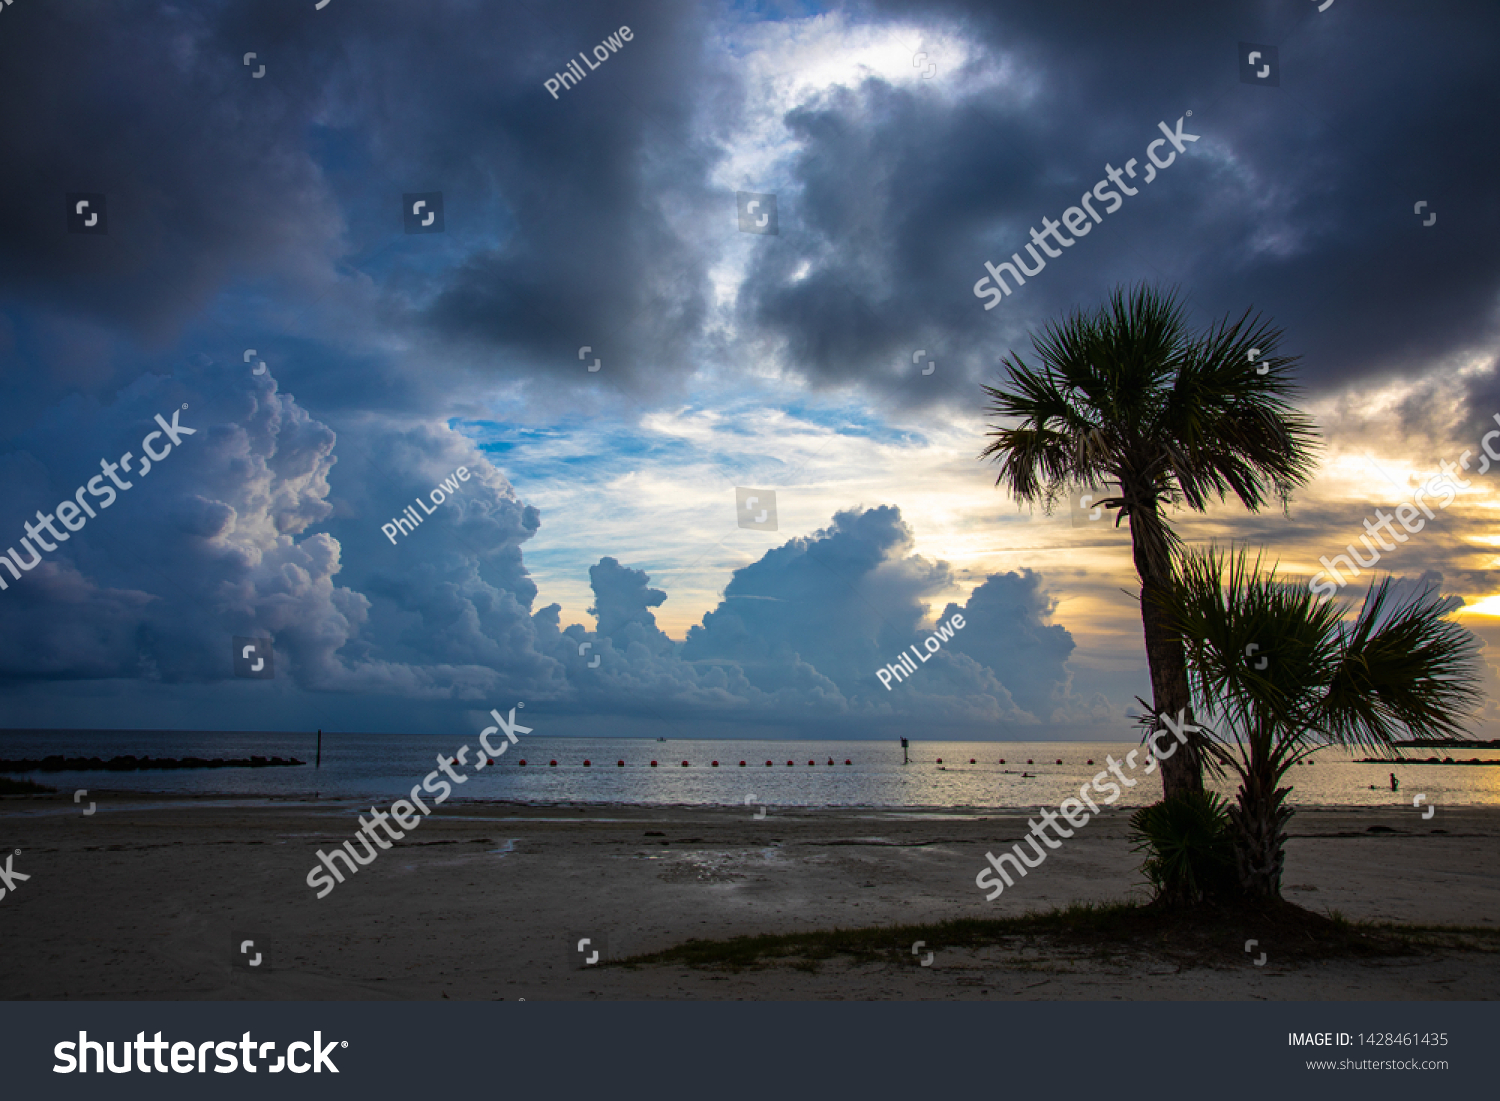 stock-photo-the-calm-between-storms-over